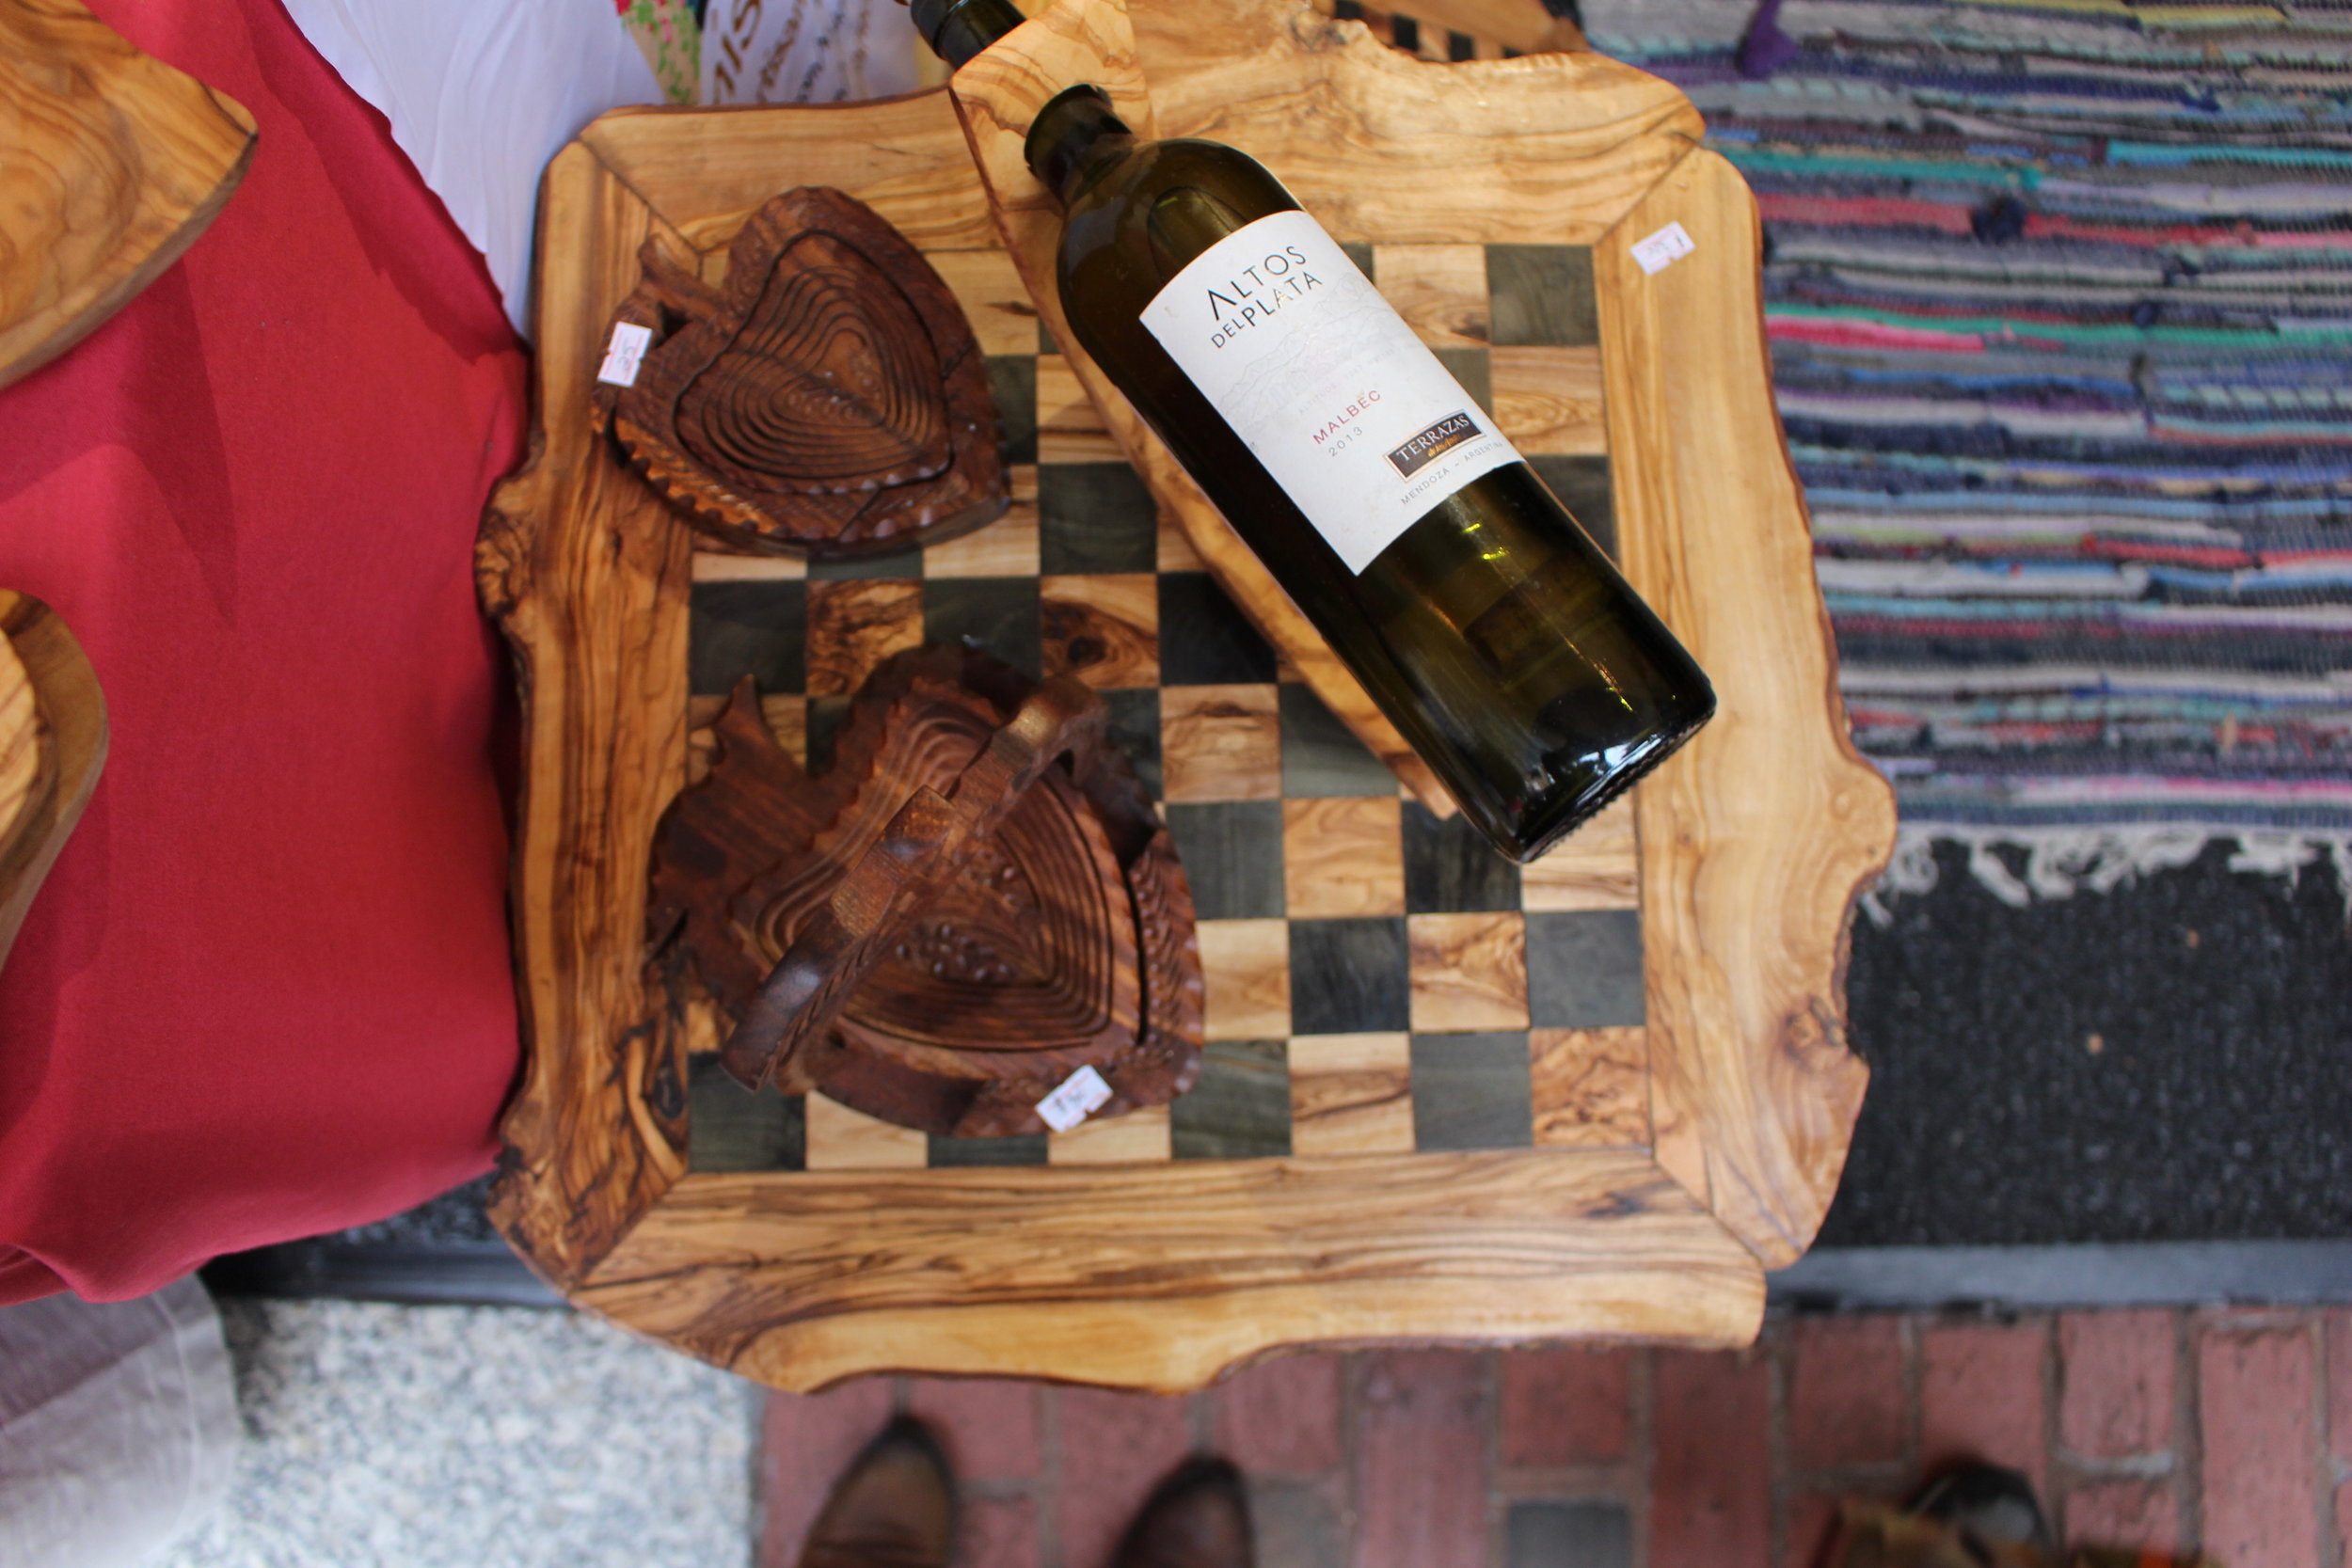 Everything Tunisia. A wine holder and chess board from the North African country at Naj Alroud's booth in downtown DC. Photo By Natalie Hutchison